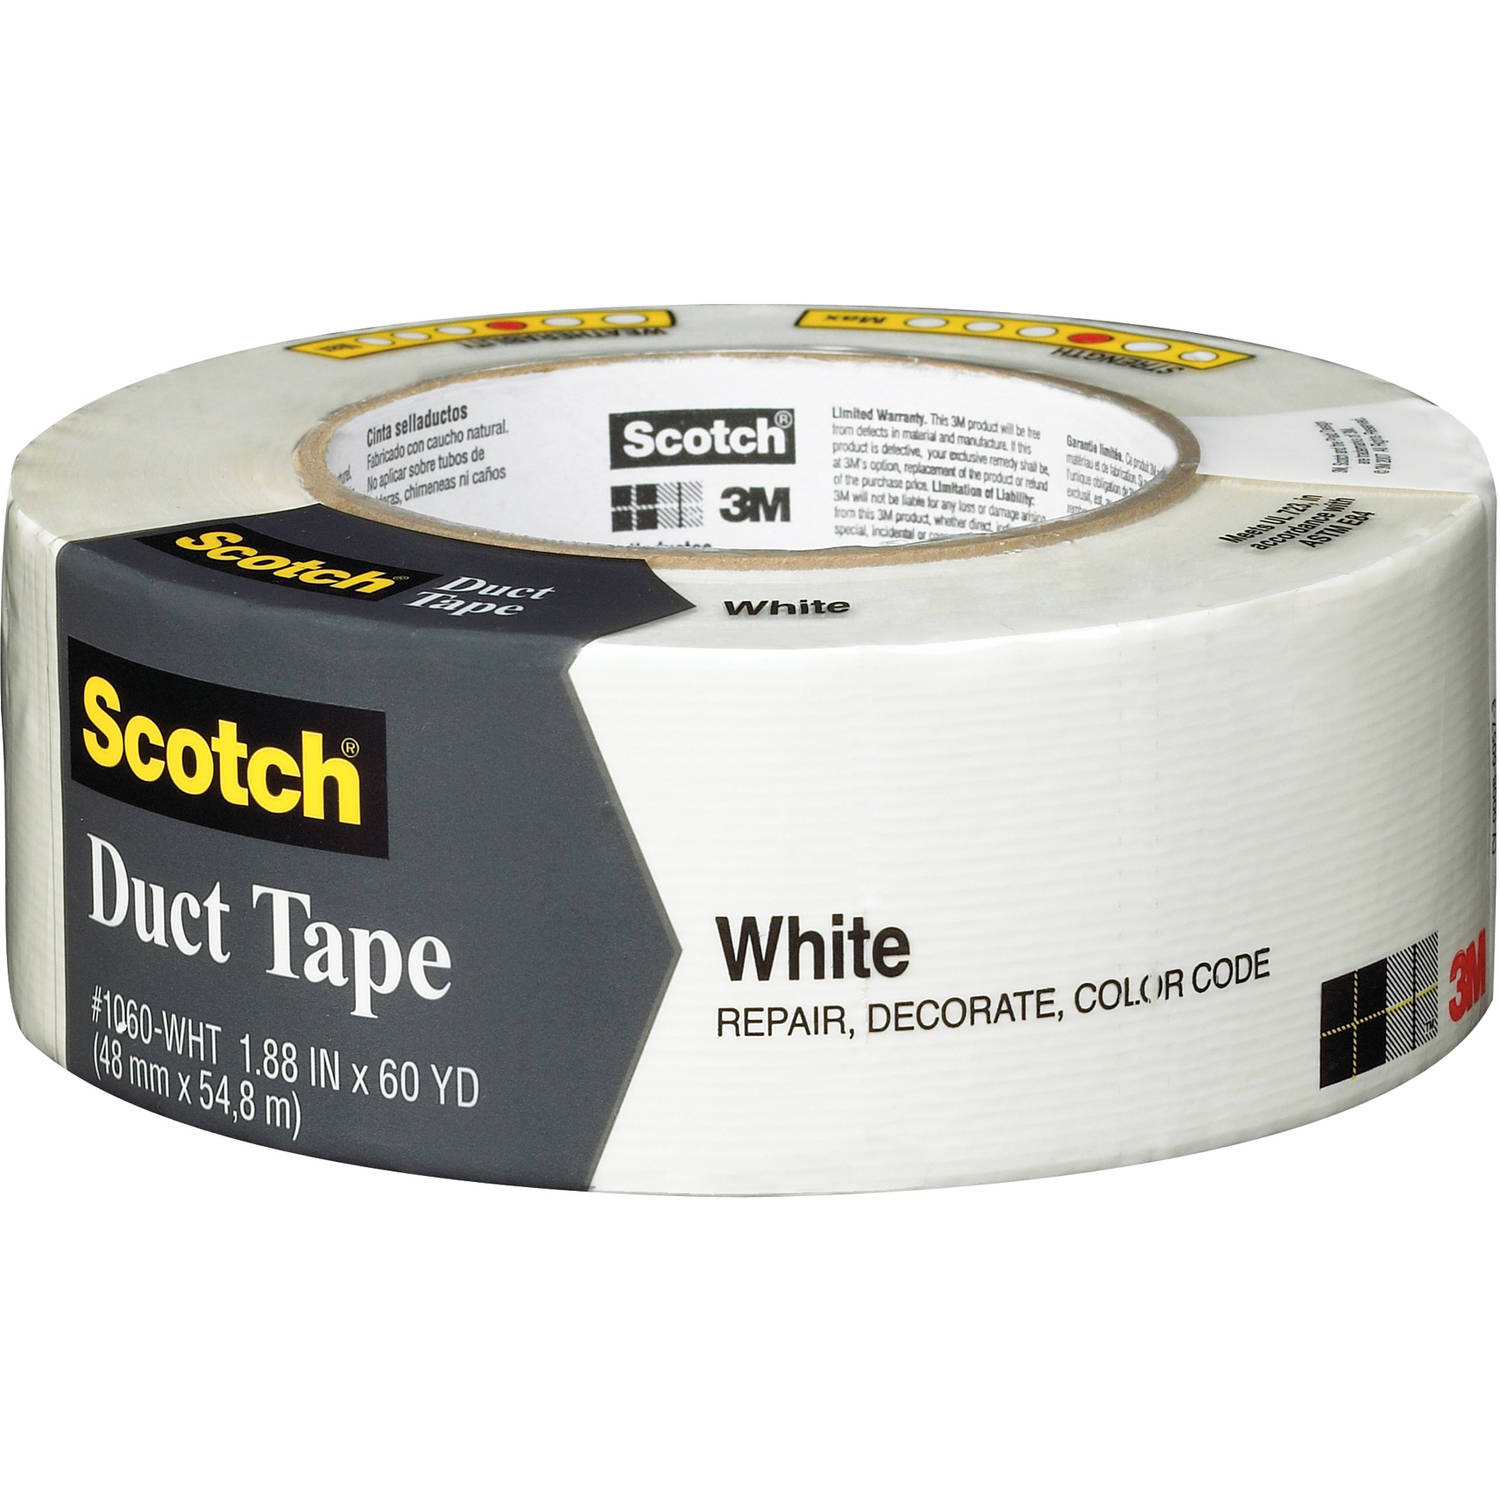 "Scotch 1060-WHT-A 1.88"" x 60 Yards White Duct Tape"